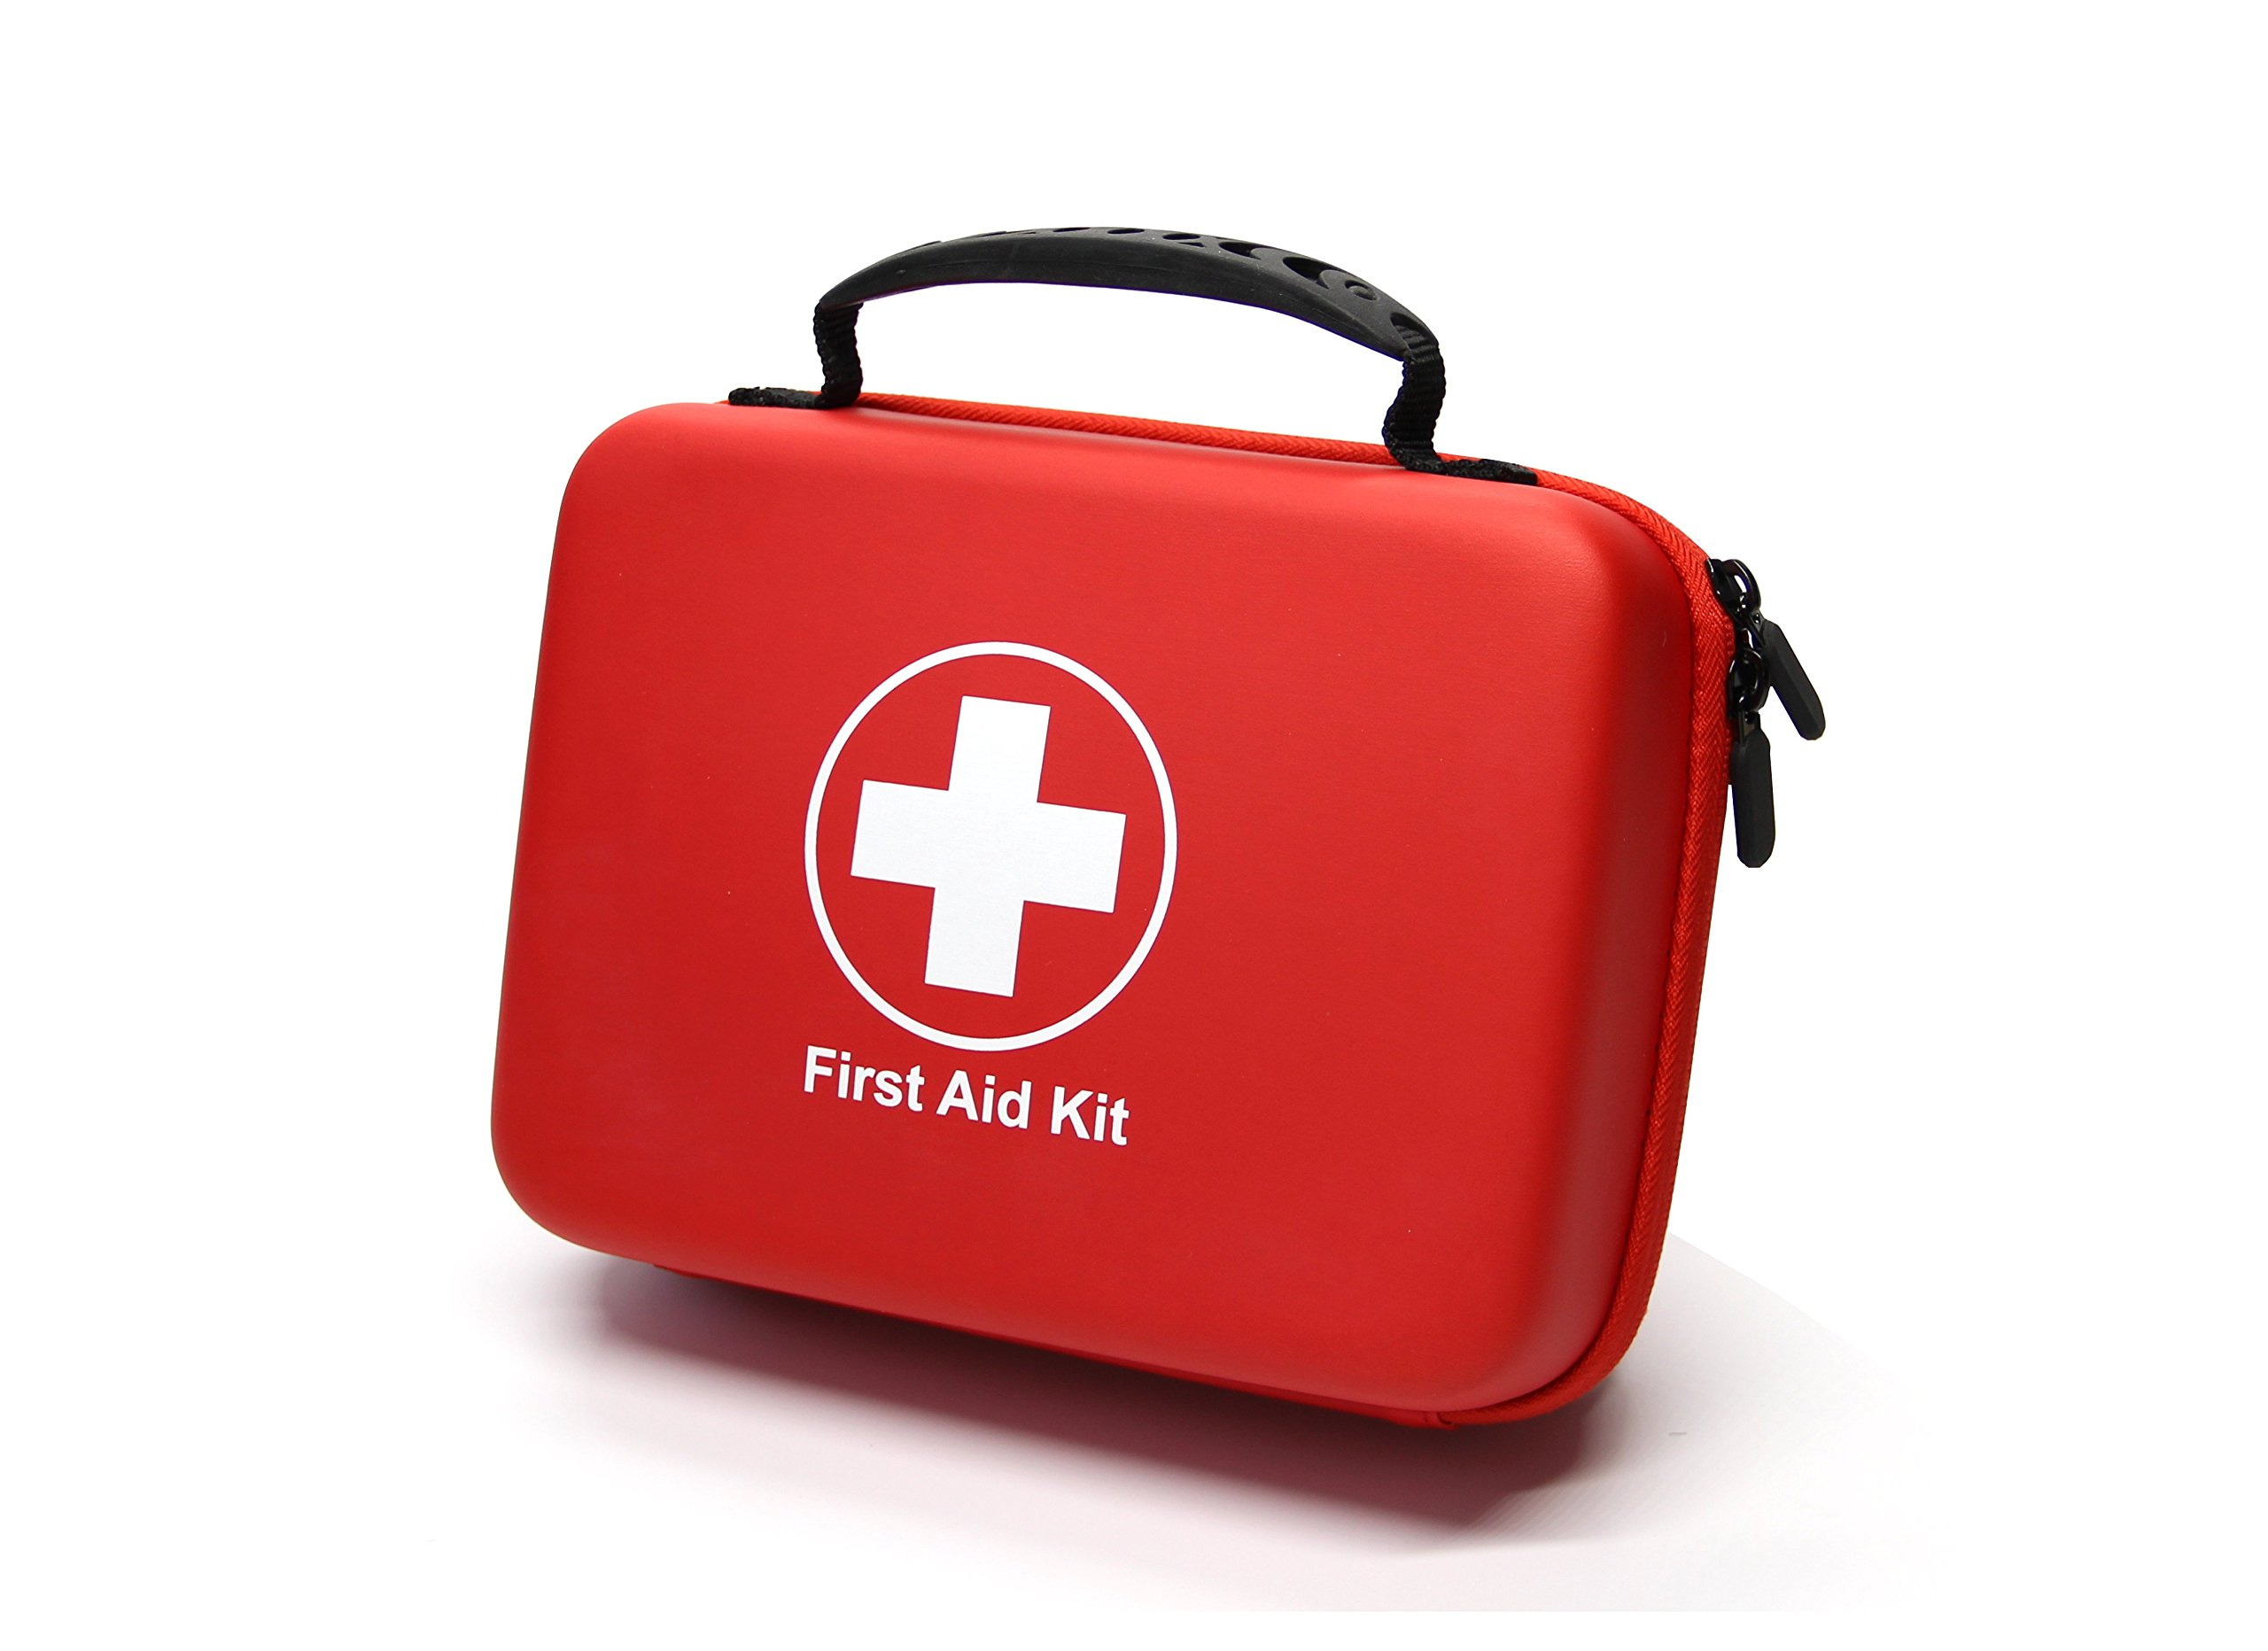 Compact First Aid Kit (228pcs) Designed for Family Emergency Care. Waterproof EVA Case and Bag is Ideal for The Car, Home, Boat, School, Camping, Hiking, Office, Sports. Protect Your Loved Ones. by SHBC